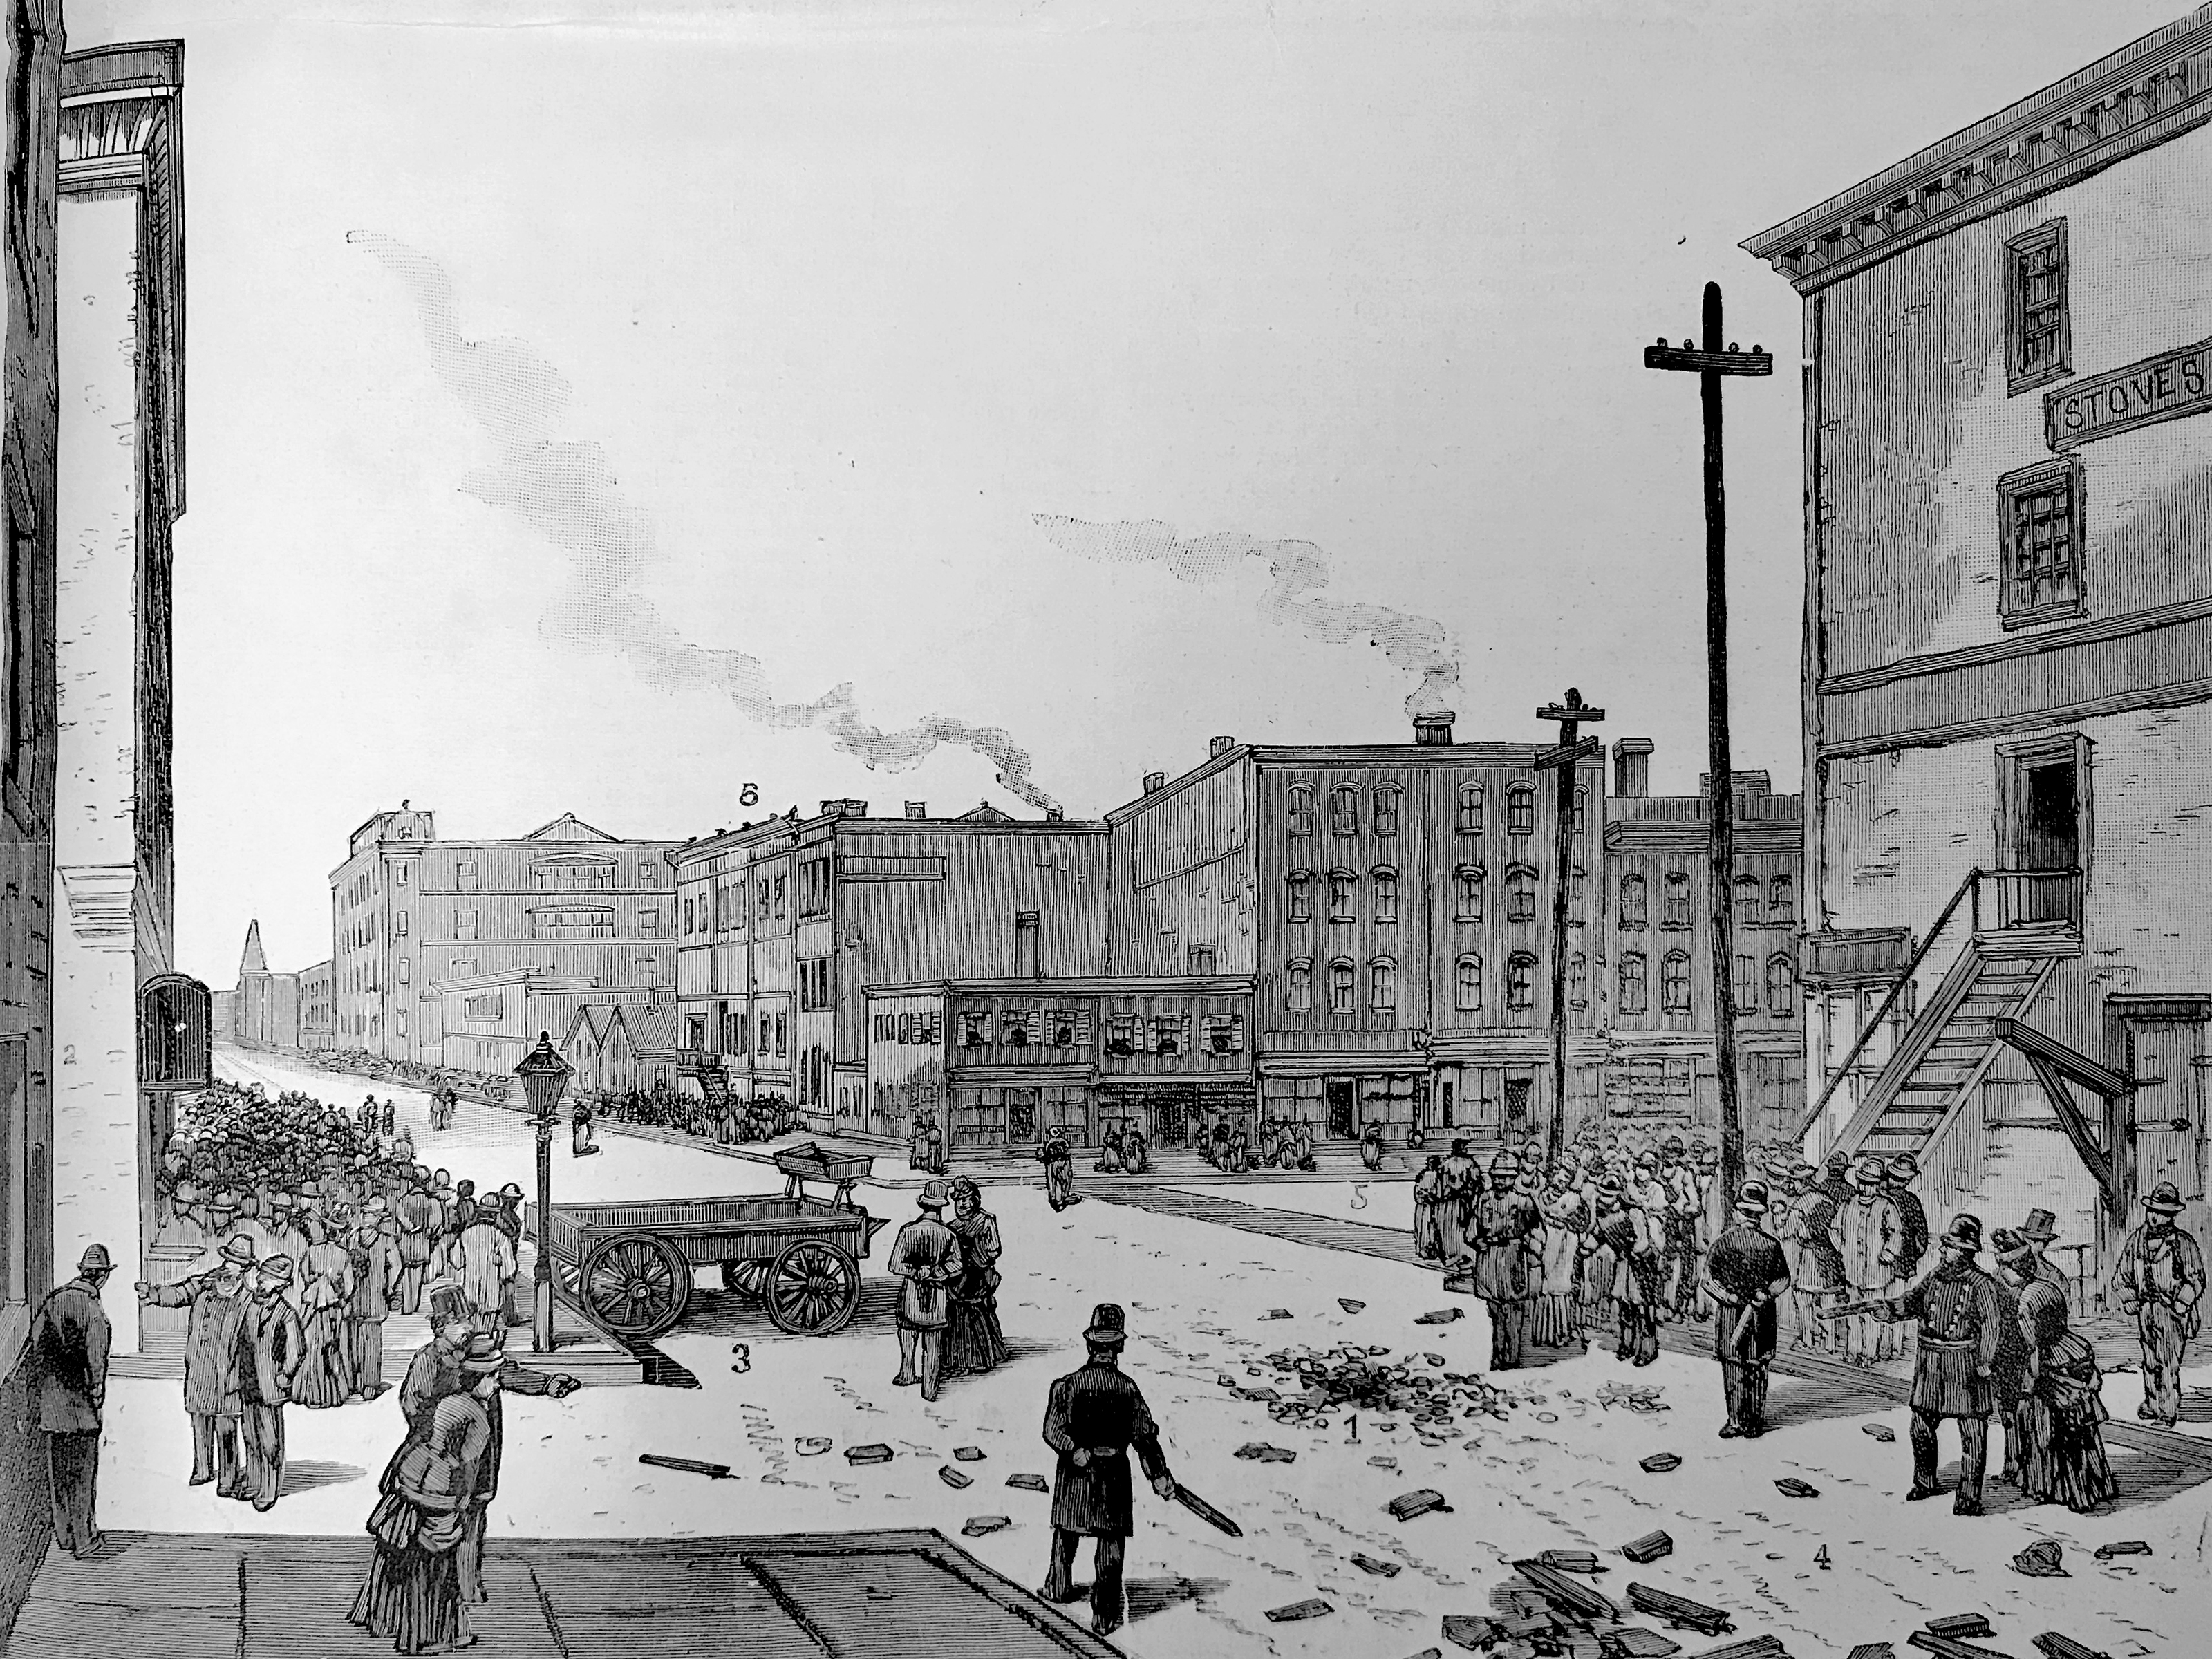 Illustration of a mostly empty Haymarket Square after the events of May 4th.